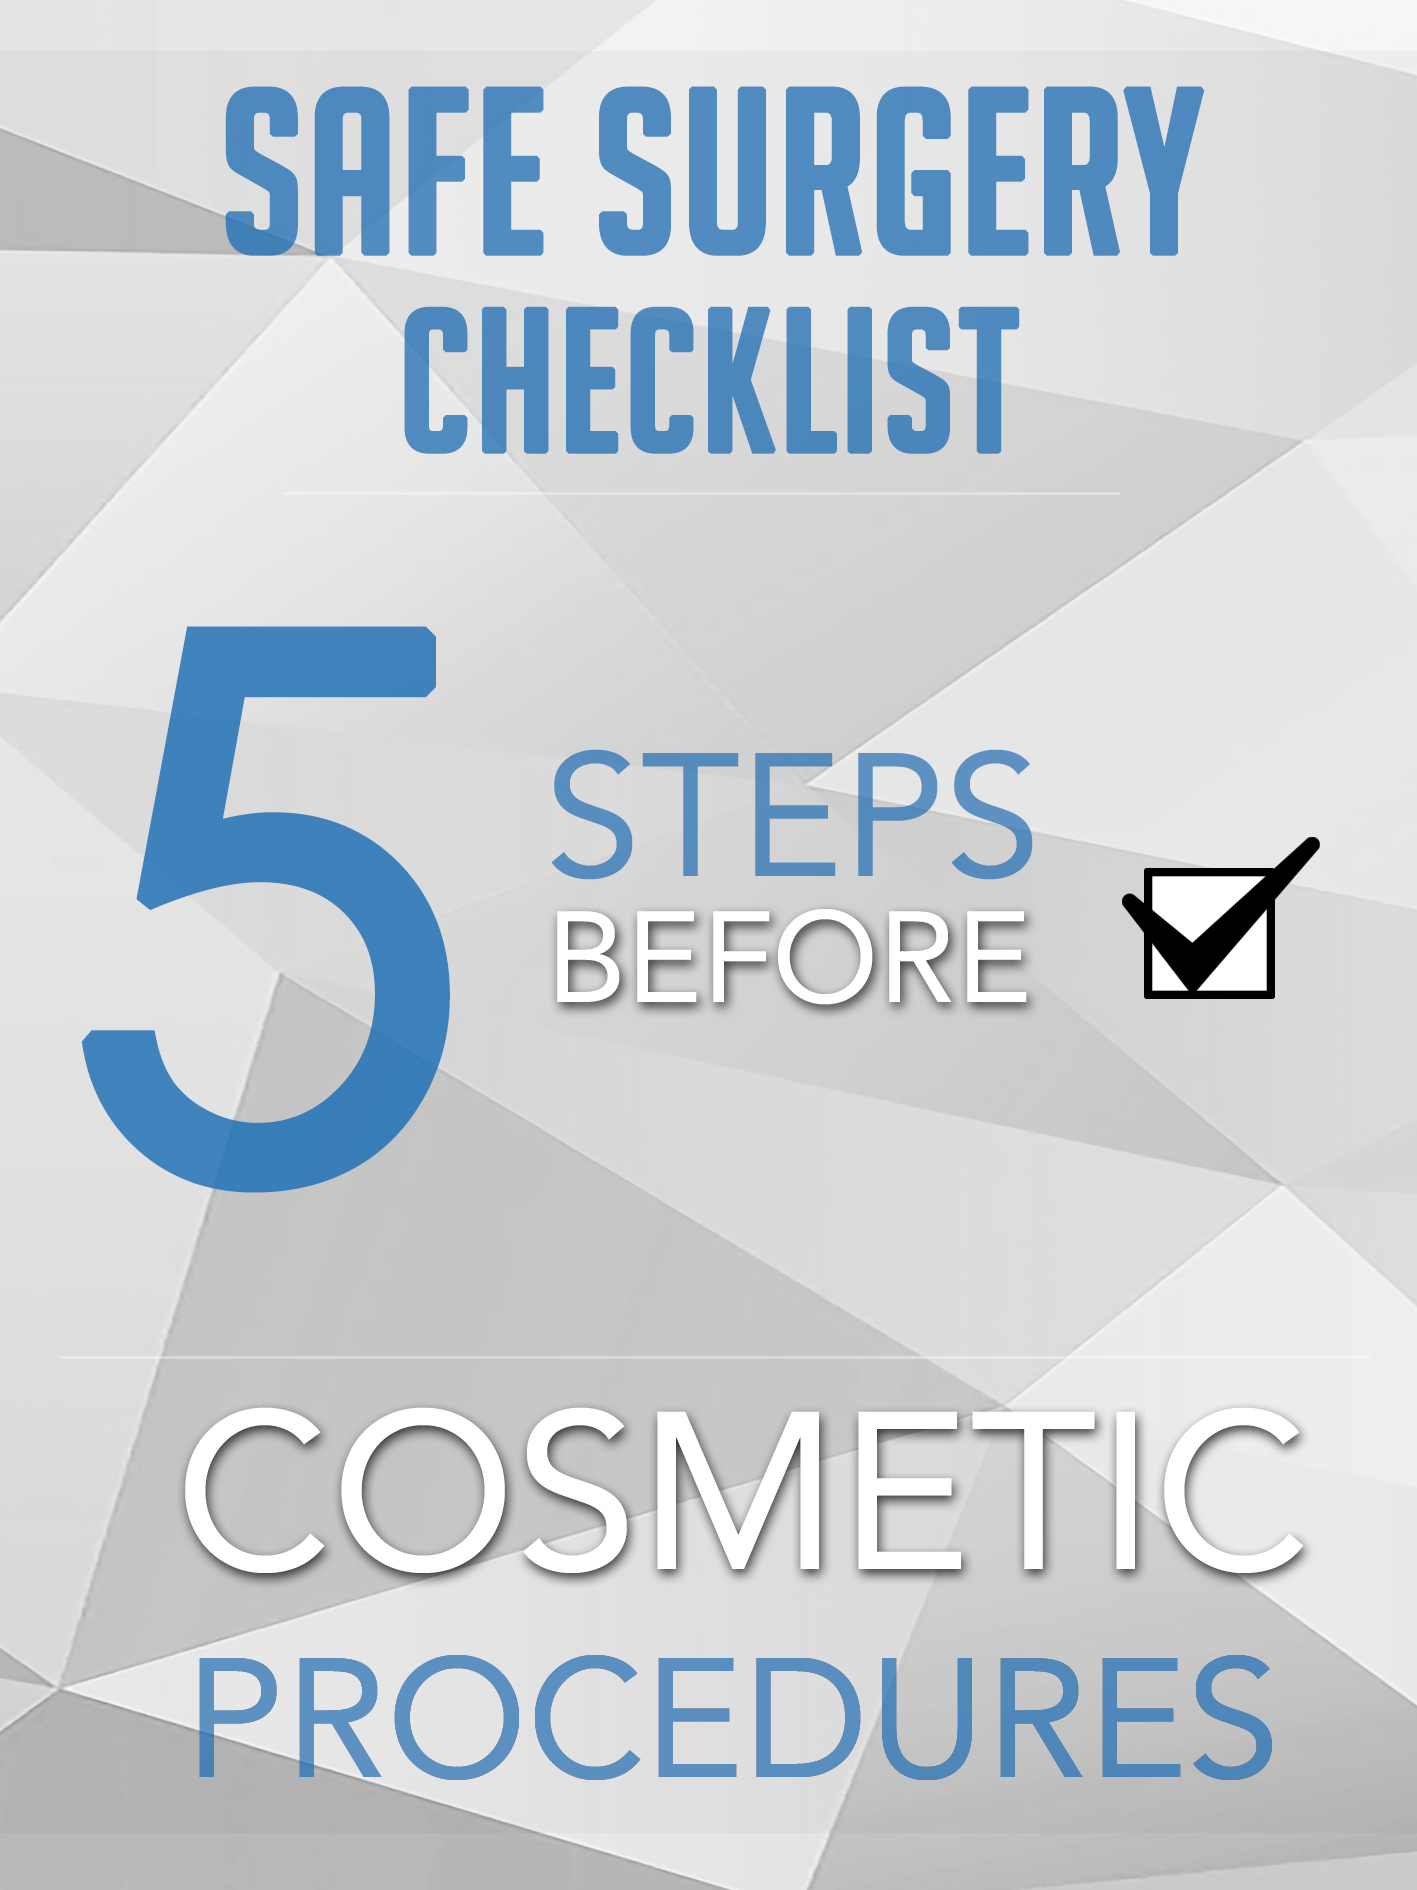 Follow this safe surgery checklist to ensure you make an informed decision when considering a cosmetic treatment